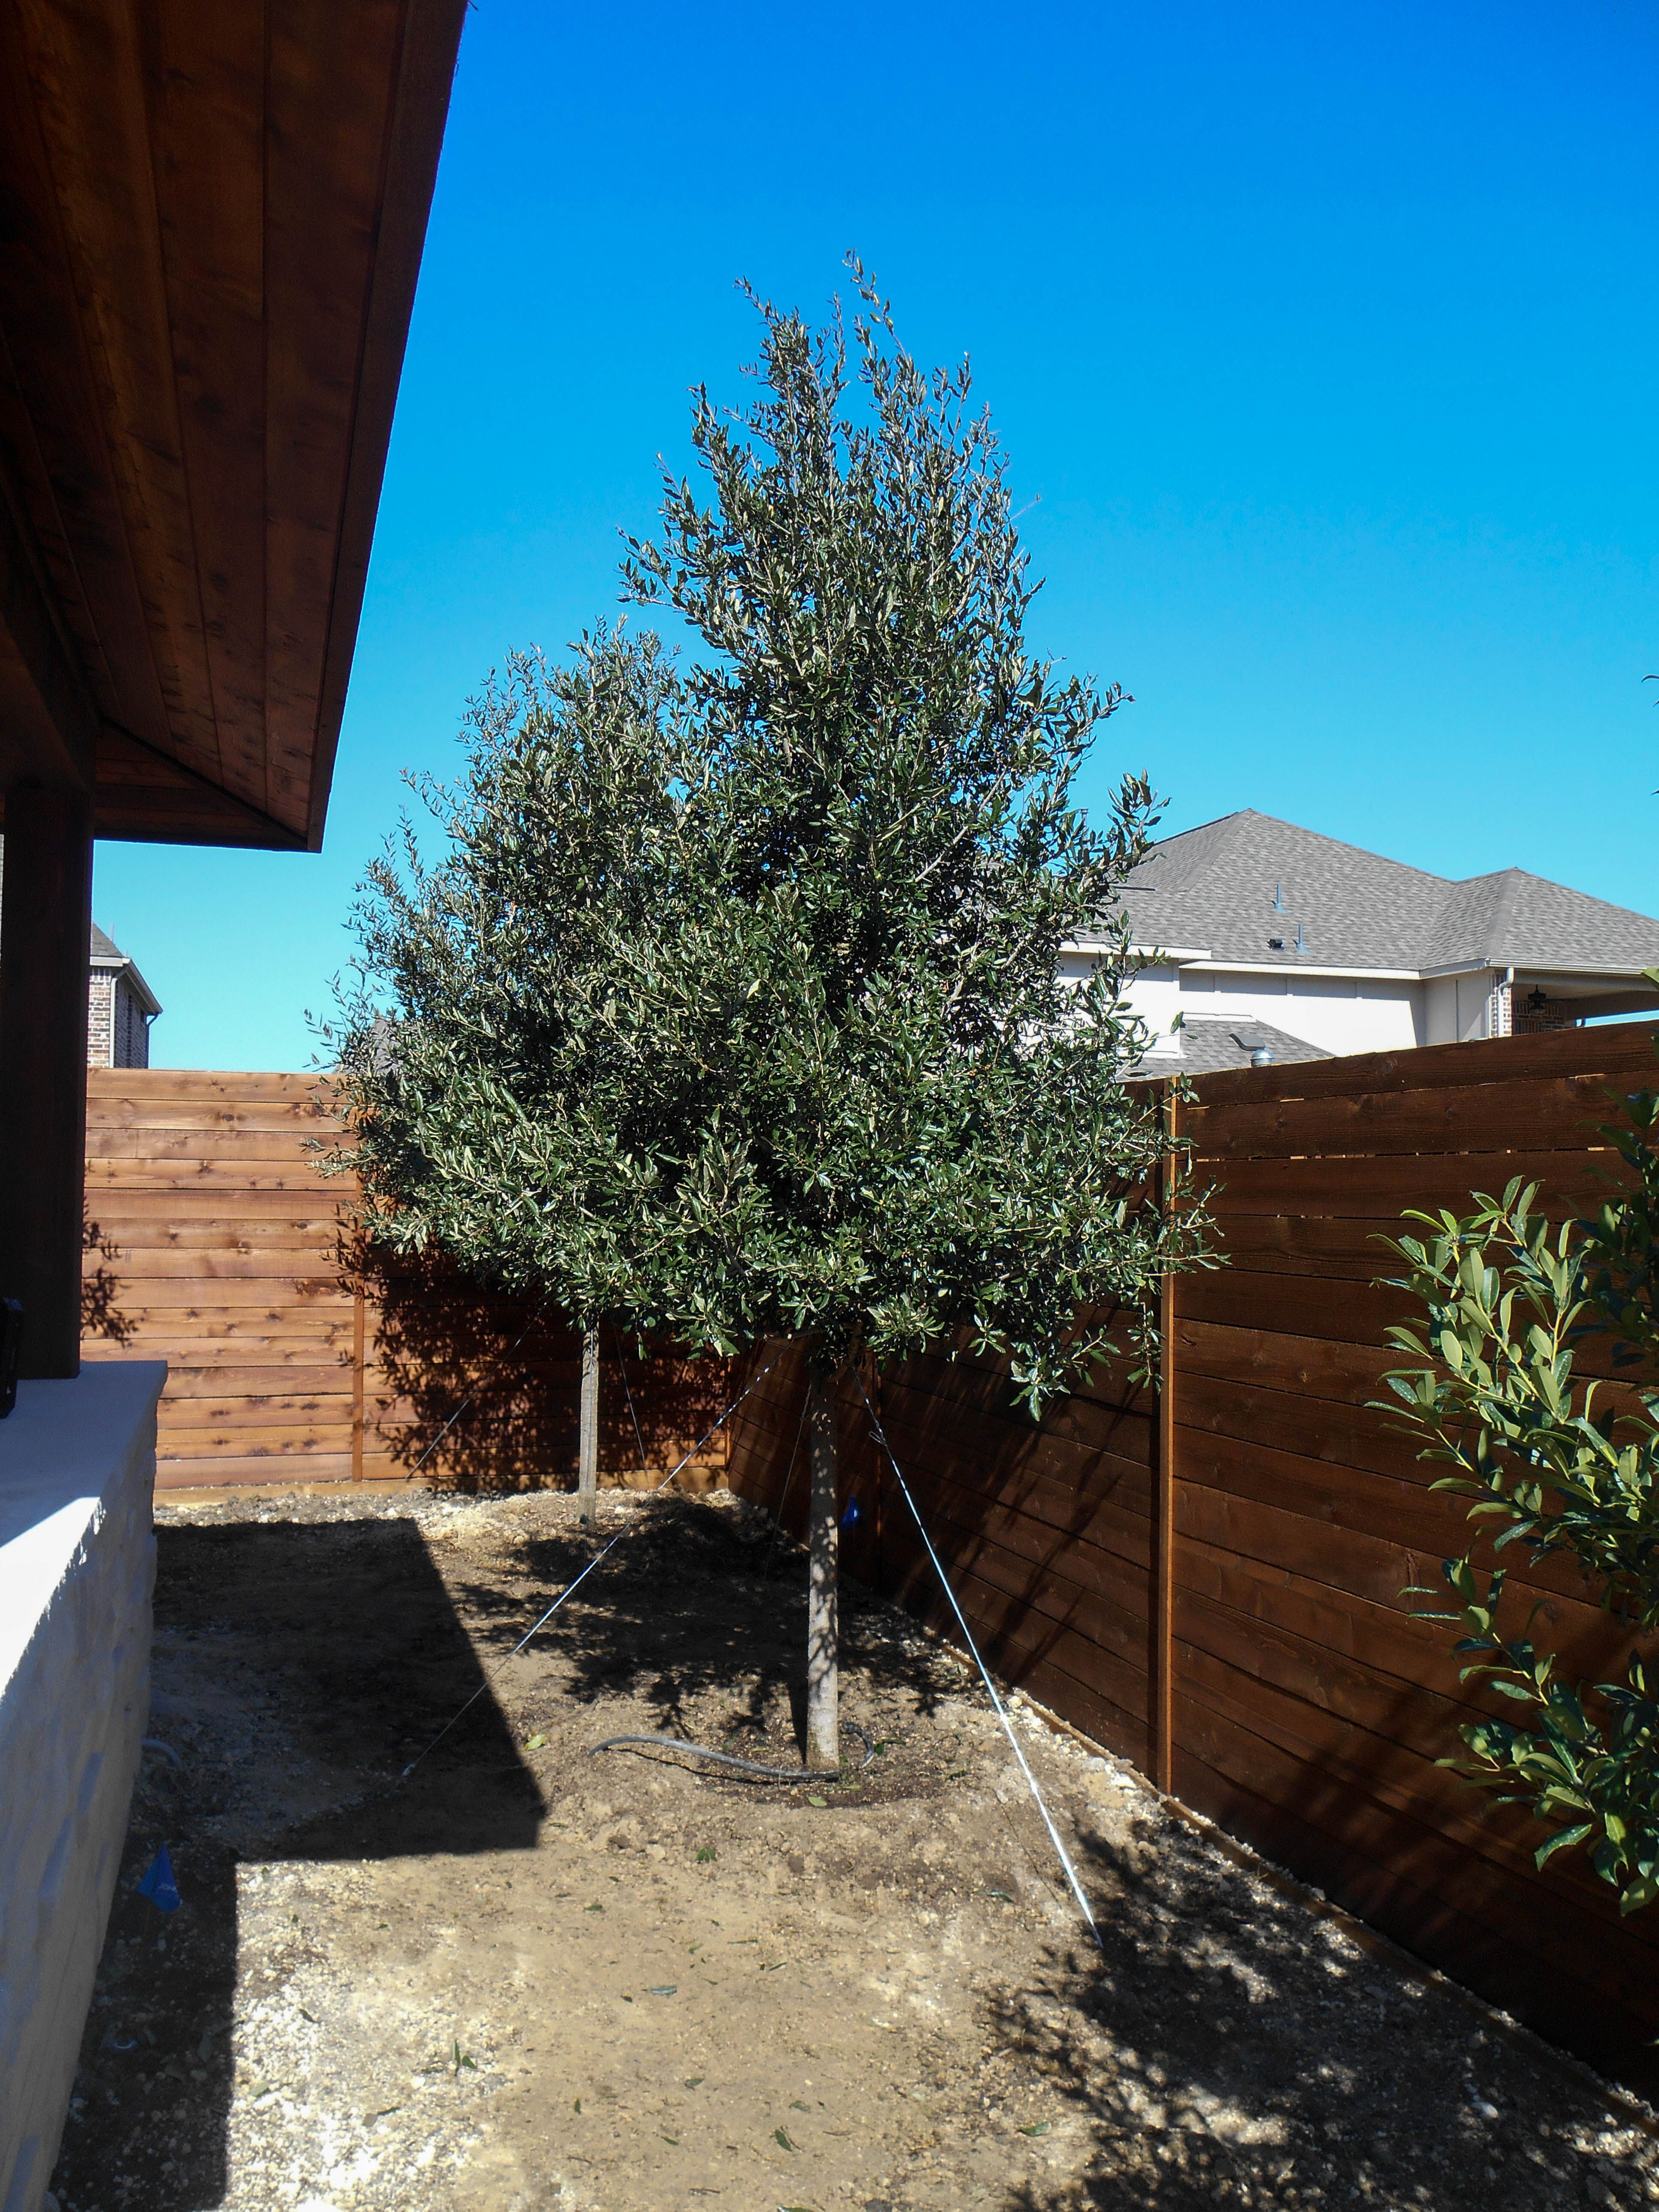 Live Oak Tree In Small Backyard Love The Horizontal Fencing Too Image From Treeland Nursery